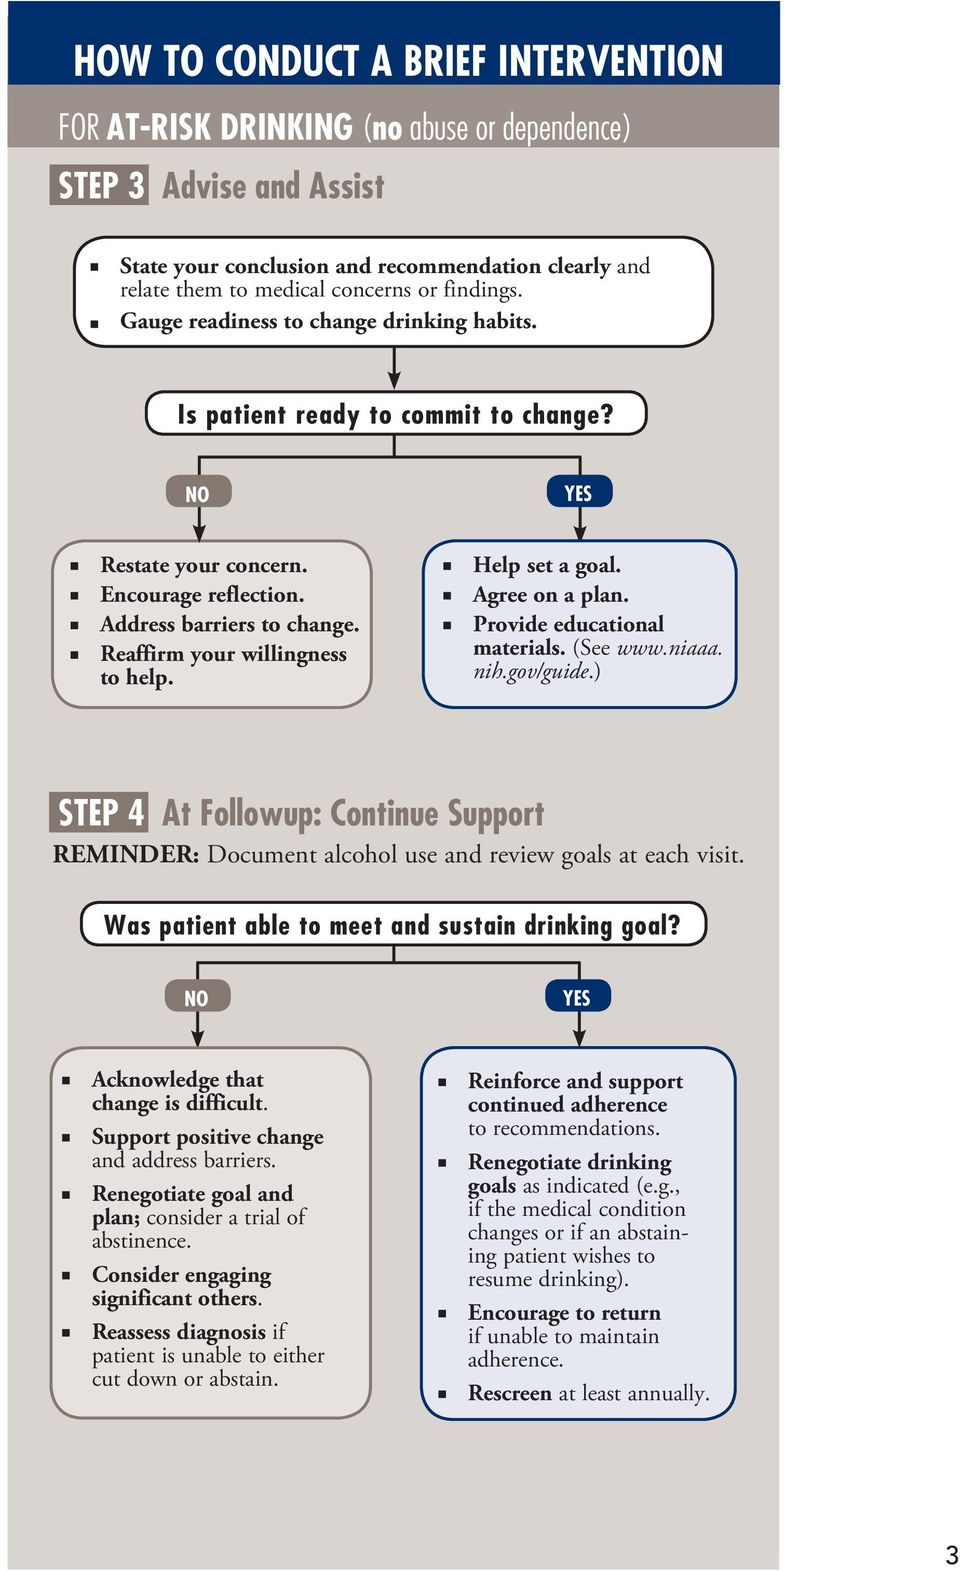 Help set a goal. Agree on a plan. Provide educational materials. (See www.niaaa. nih.gov/guide.) STEP 4 At Followup: Continue Support REMINDER: Document alcohol use and review goals at each visit.